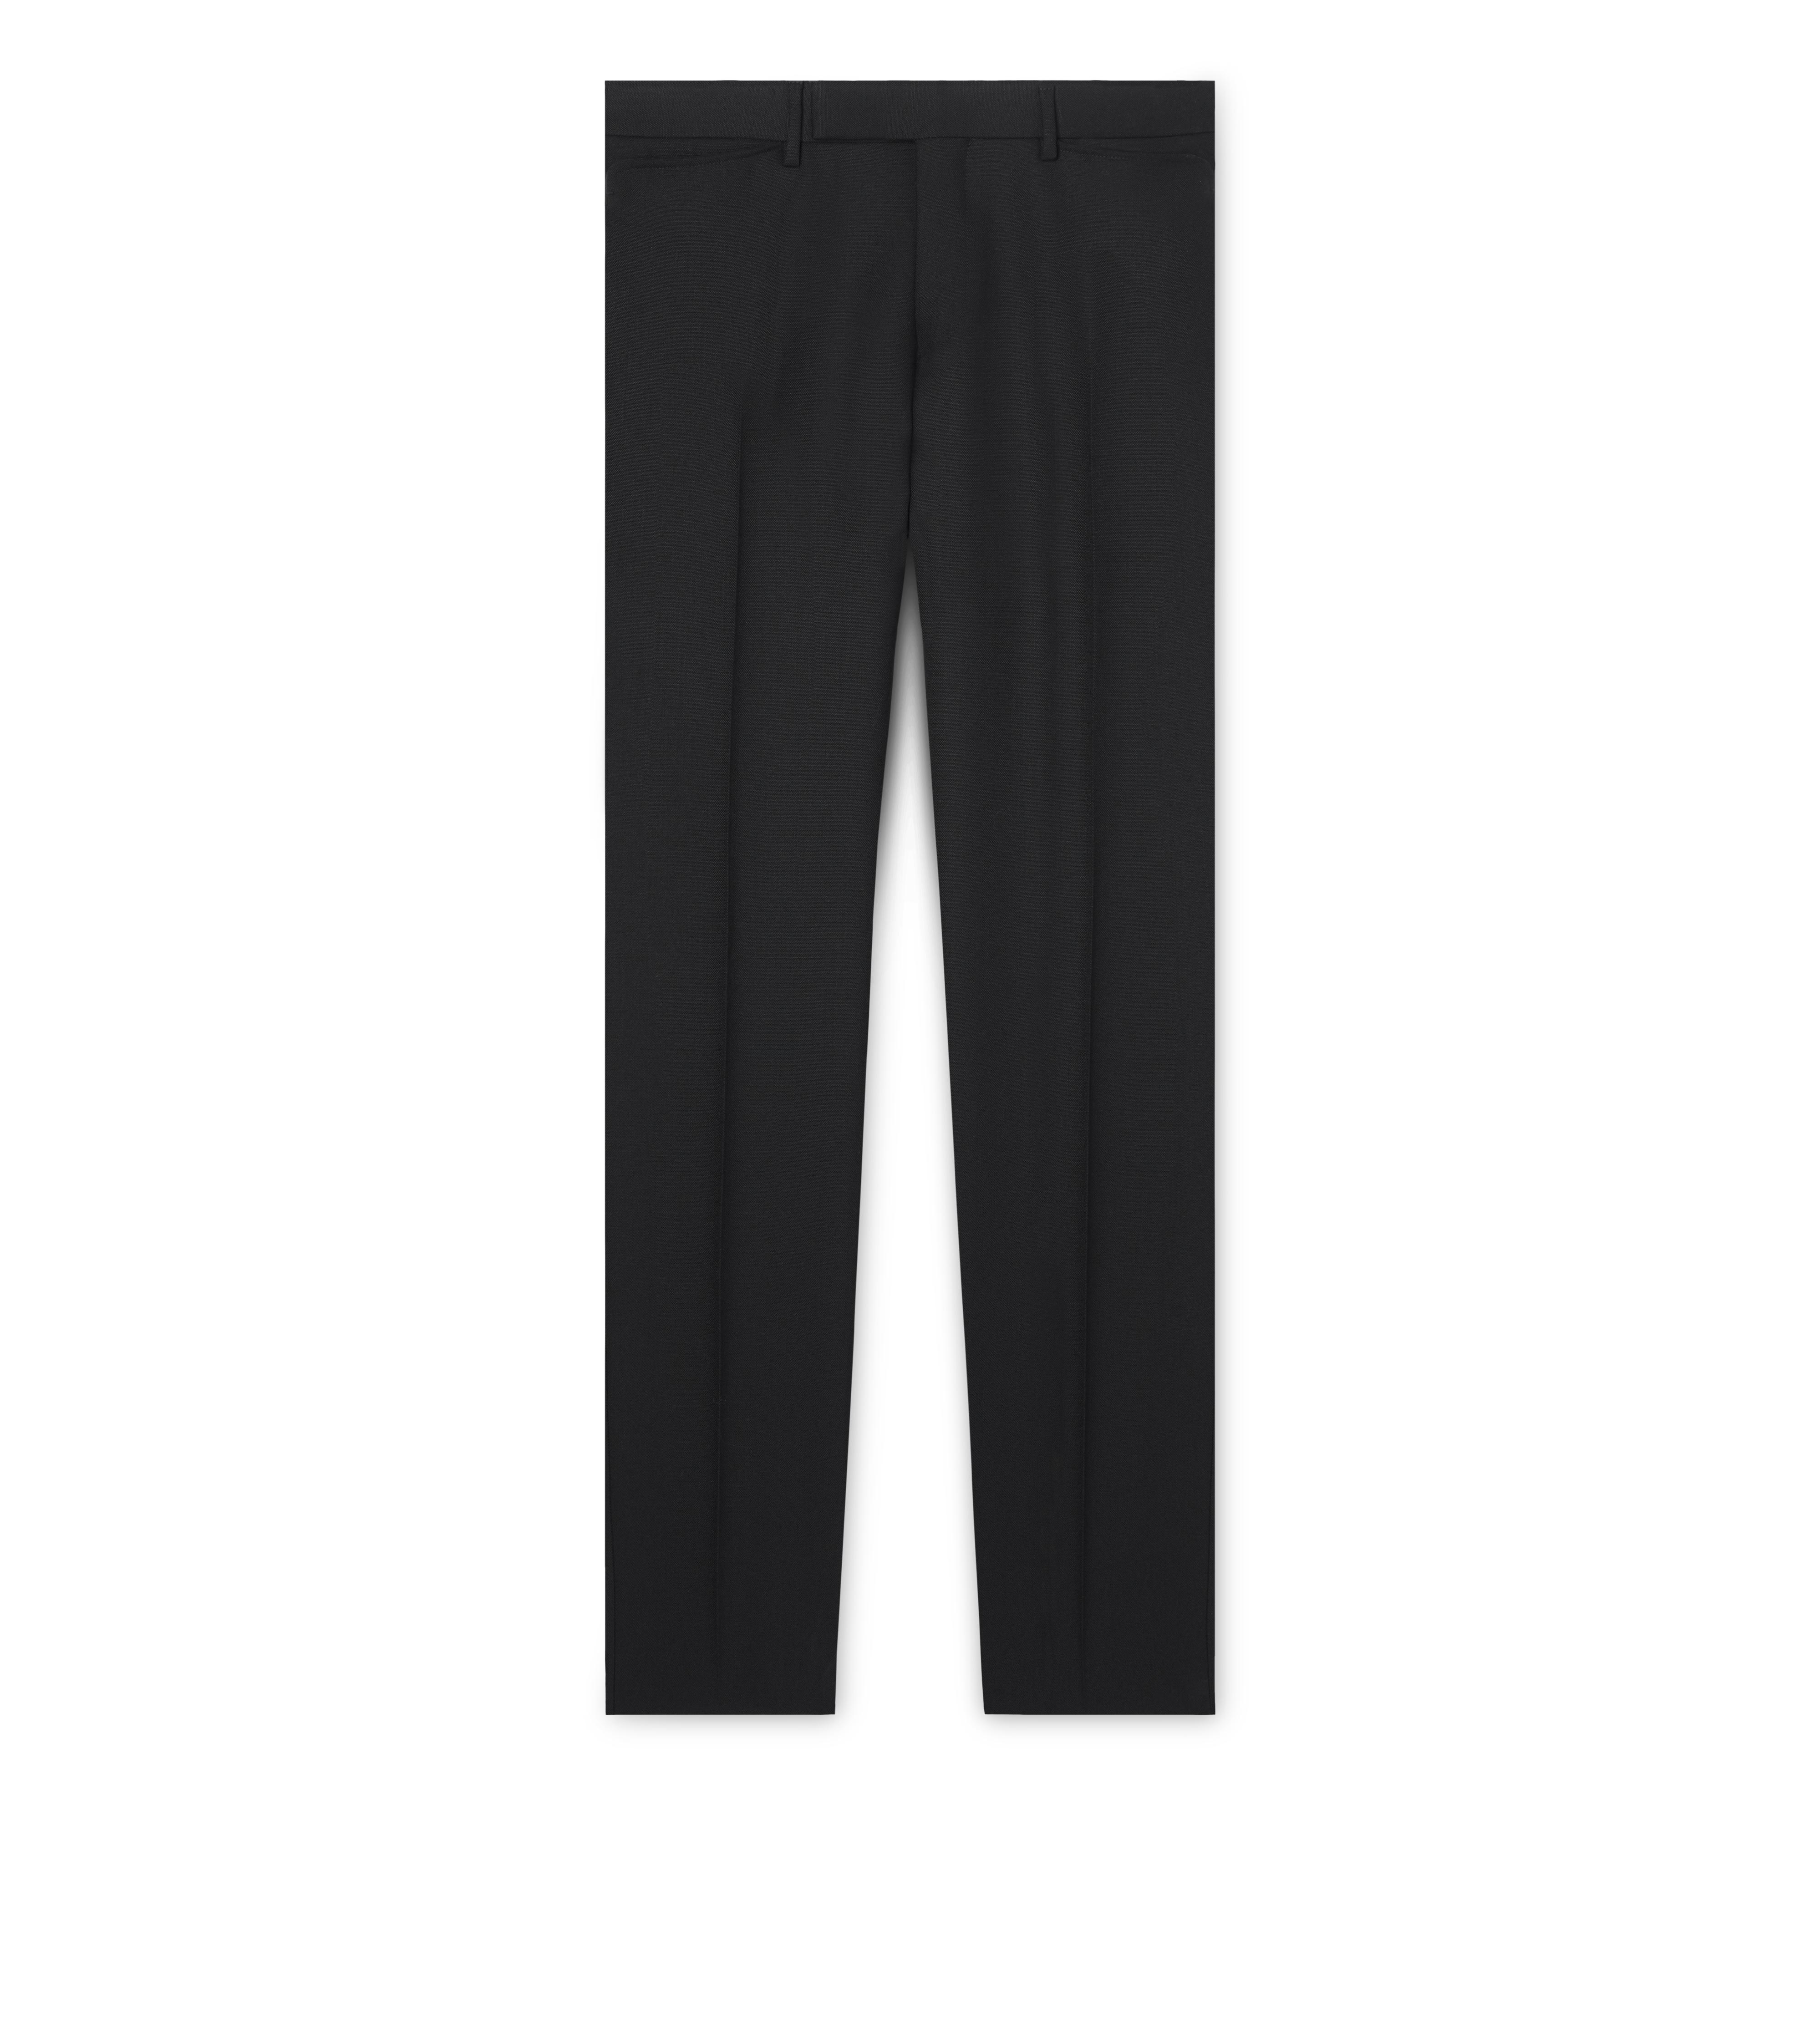 TAILORED SPORT PANTS WITH BELT LOOPS A thumbnail